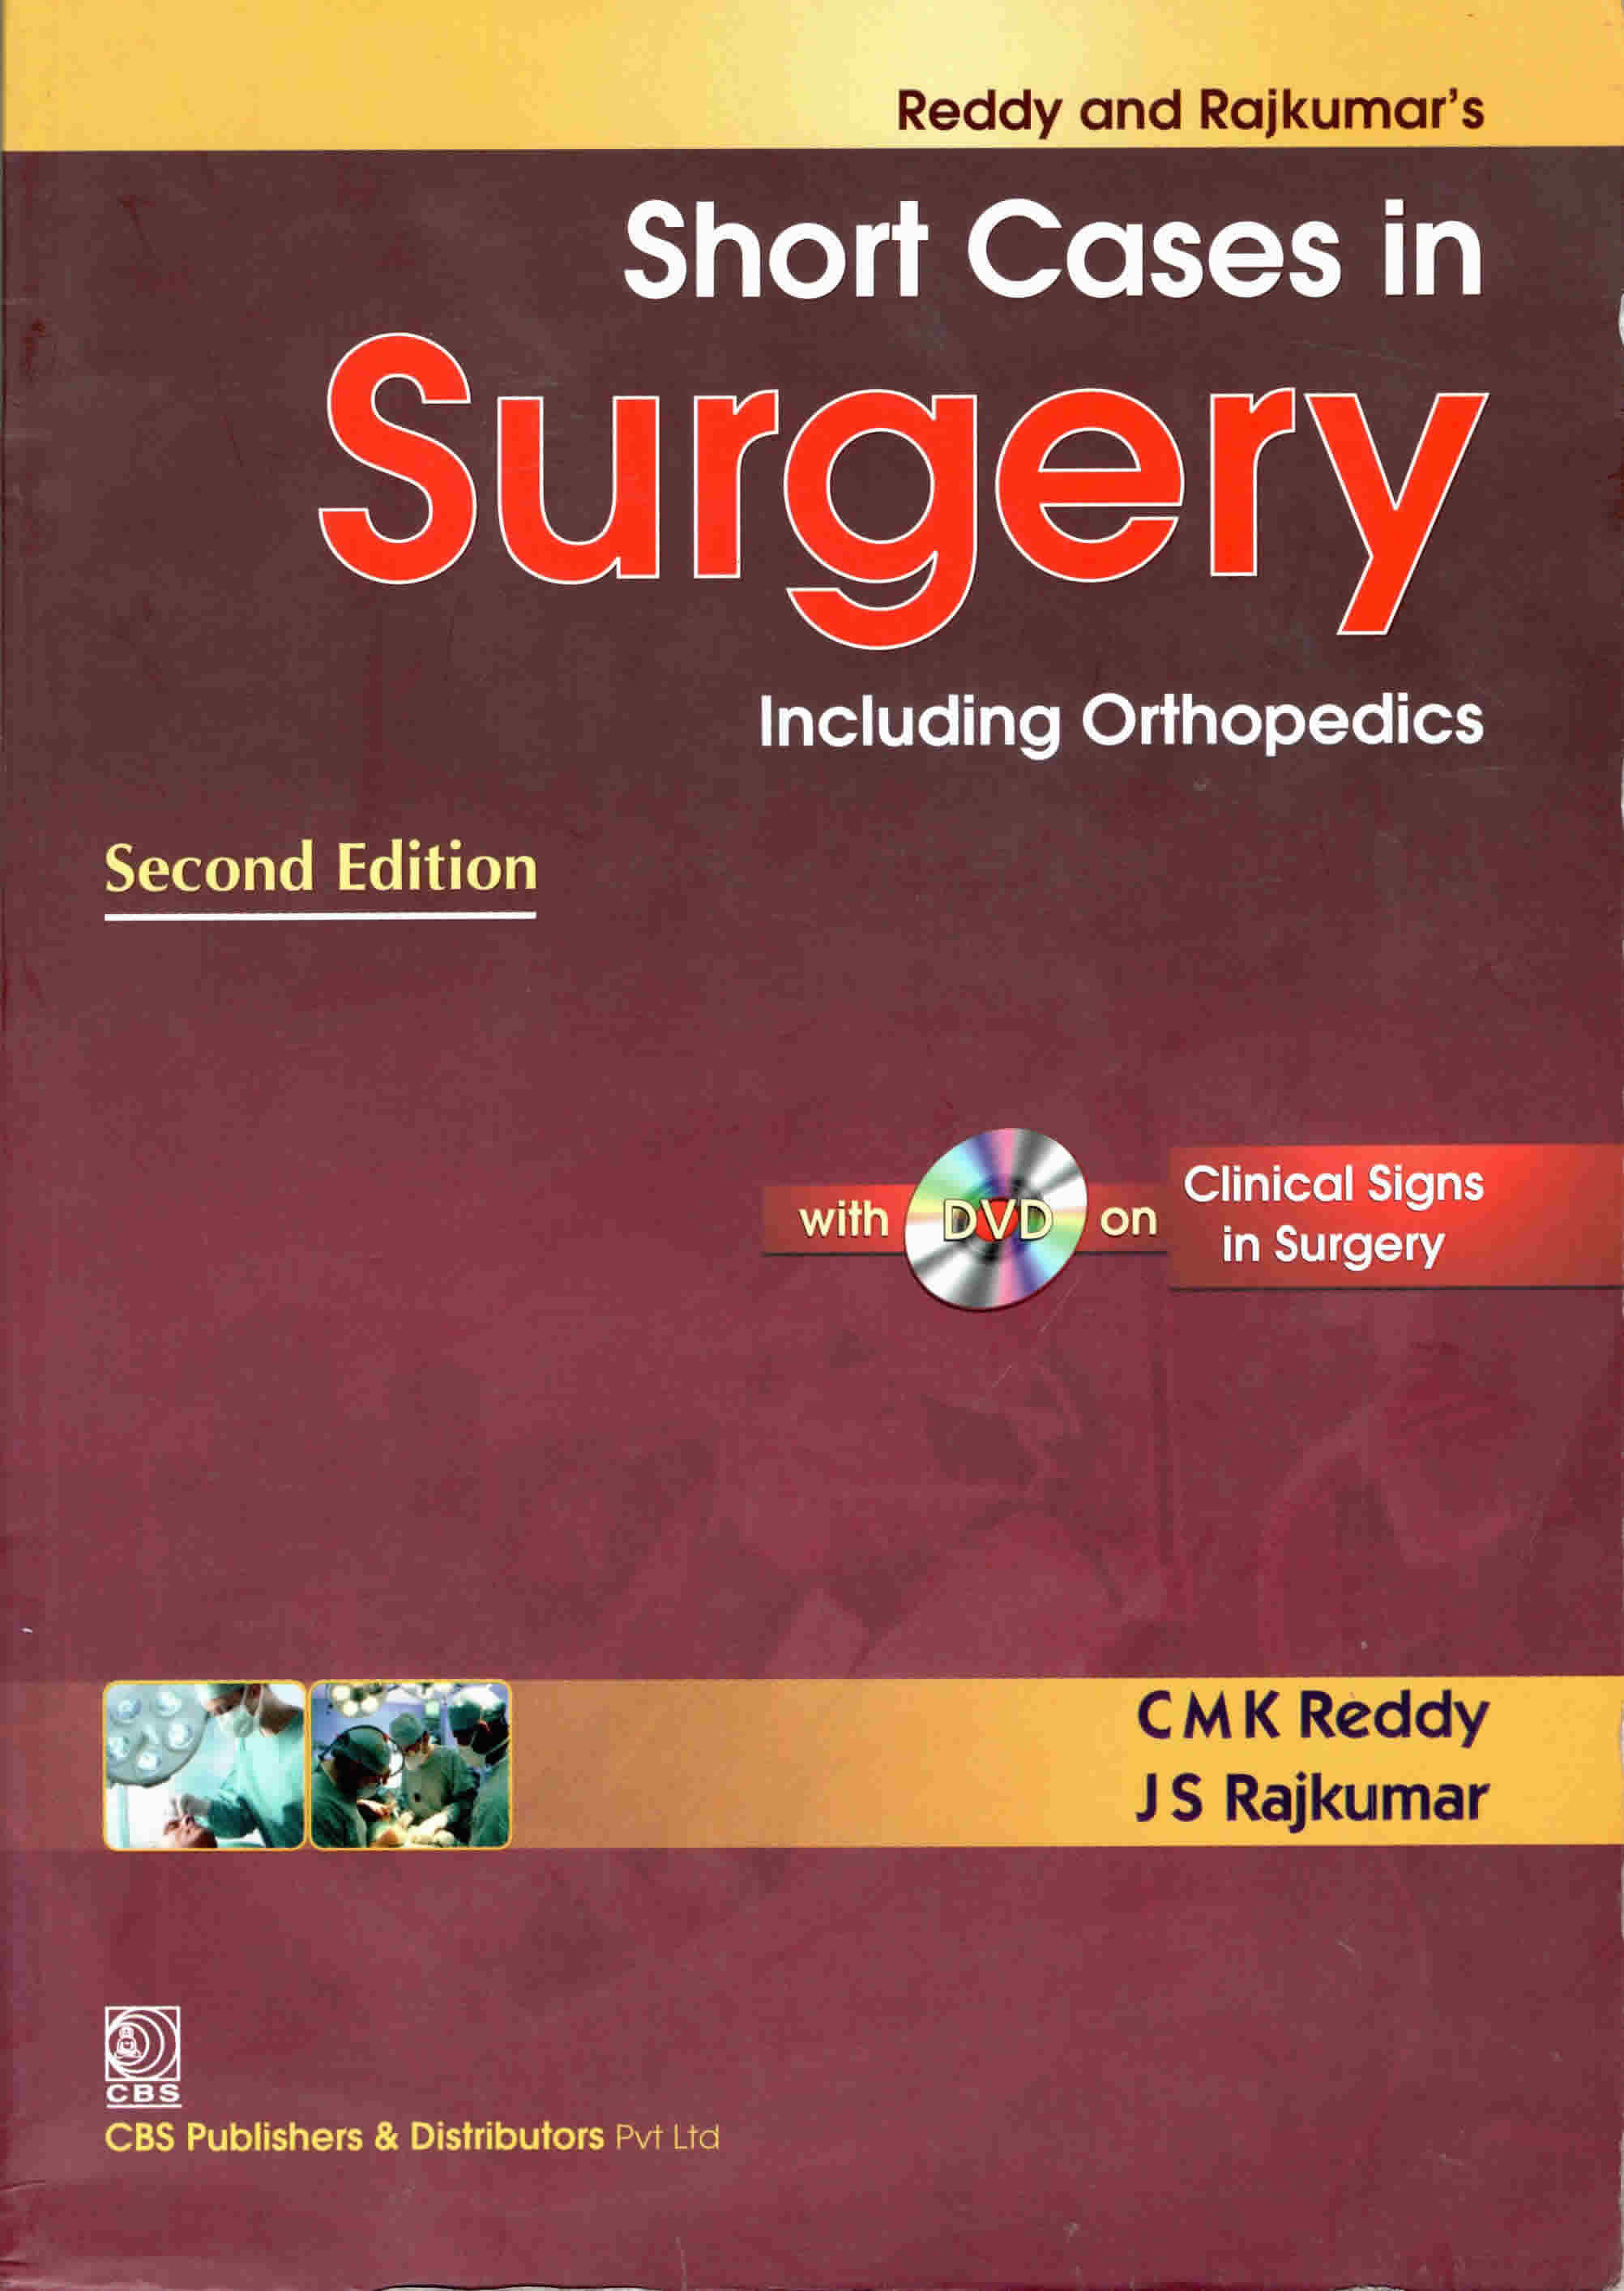 SHORT CASES IN SURGERY-SECOND EDITION